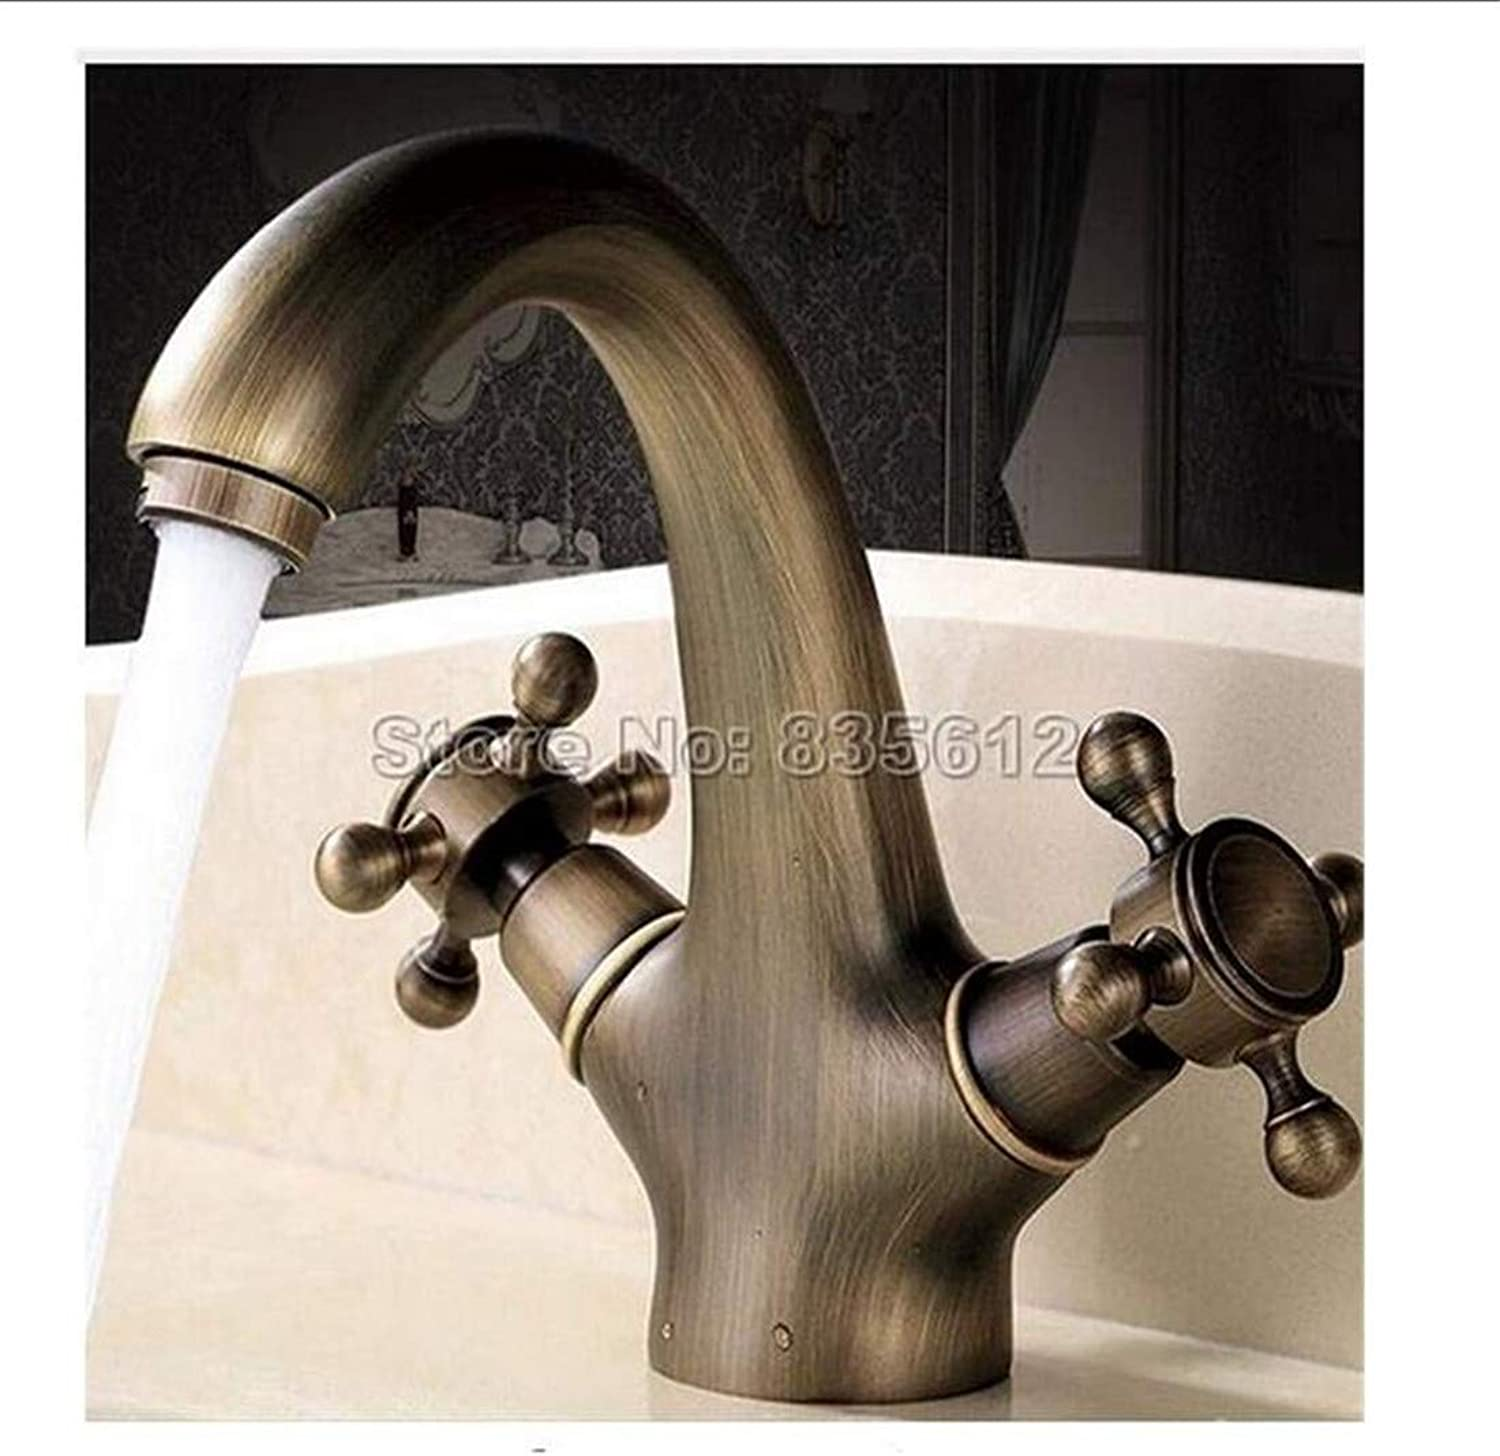 Vintage Brass Hot and Cold Water Faucet Dual Cross Handle Cold and Hot Water Mixer Taps Wash Basin